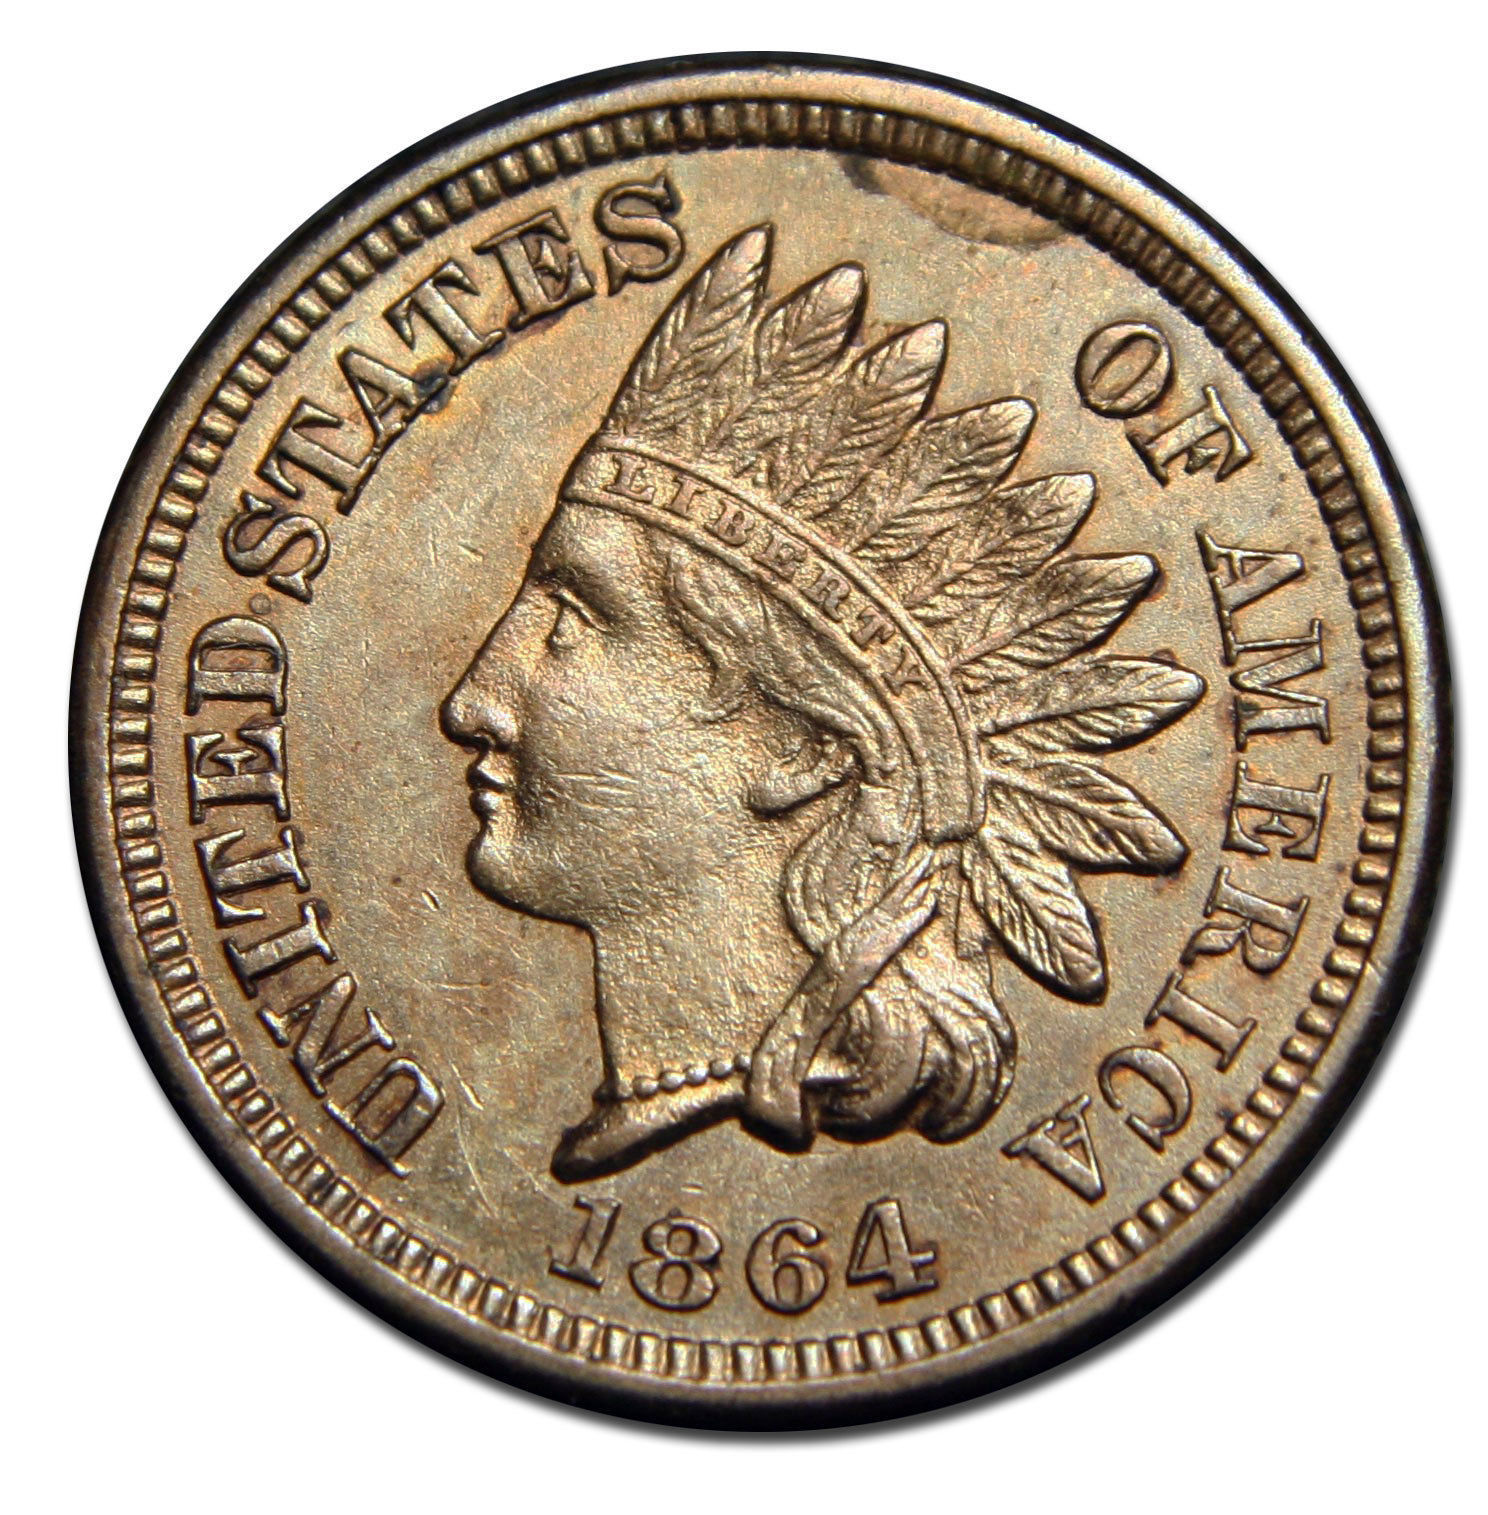 1864 Copper Nickel Indian Head Penny / Cent Coin Lot# A 1463